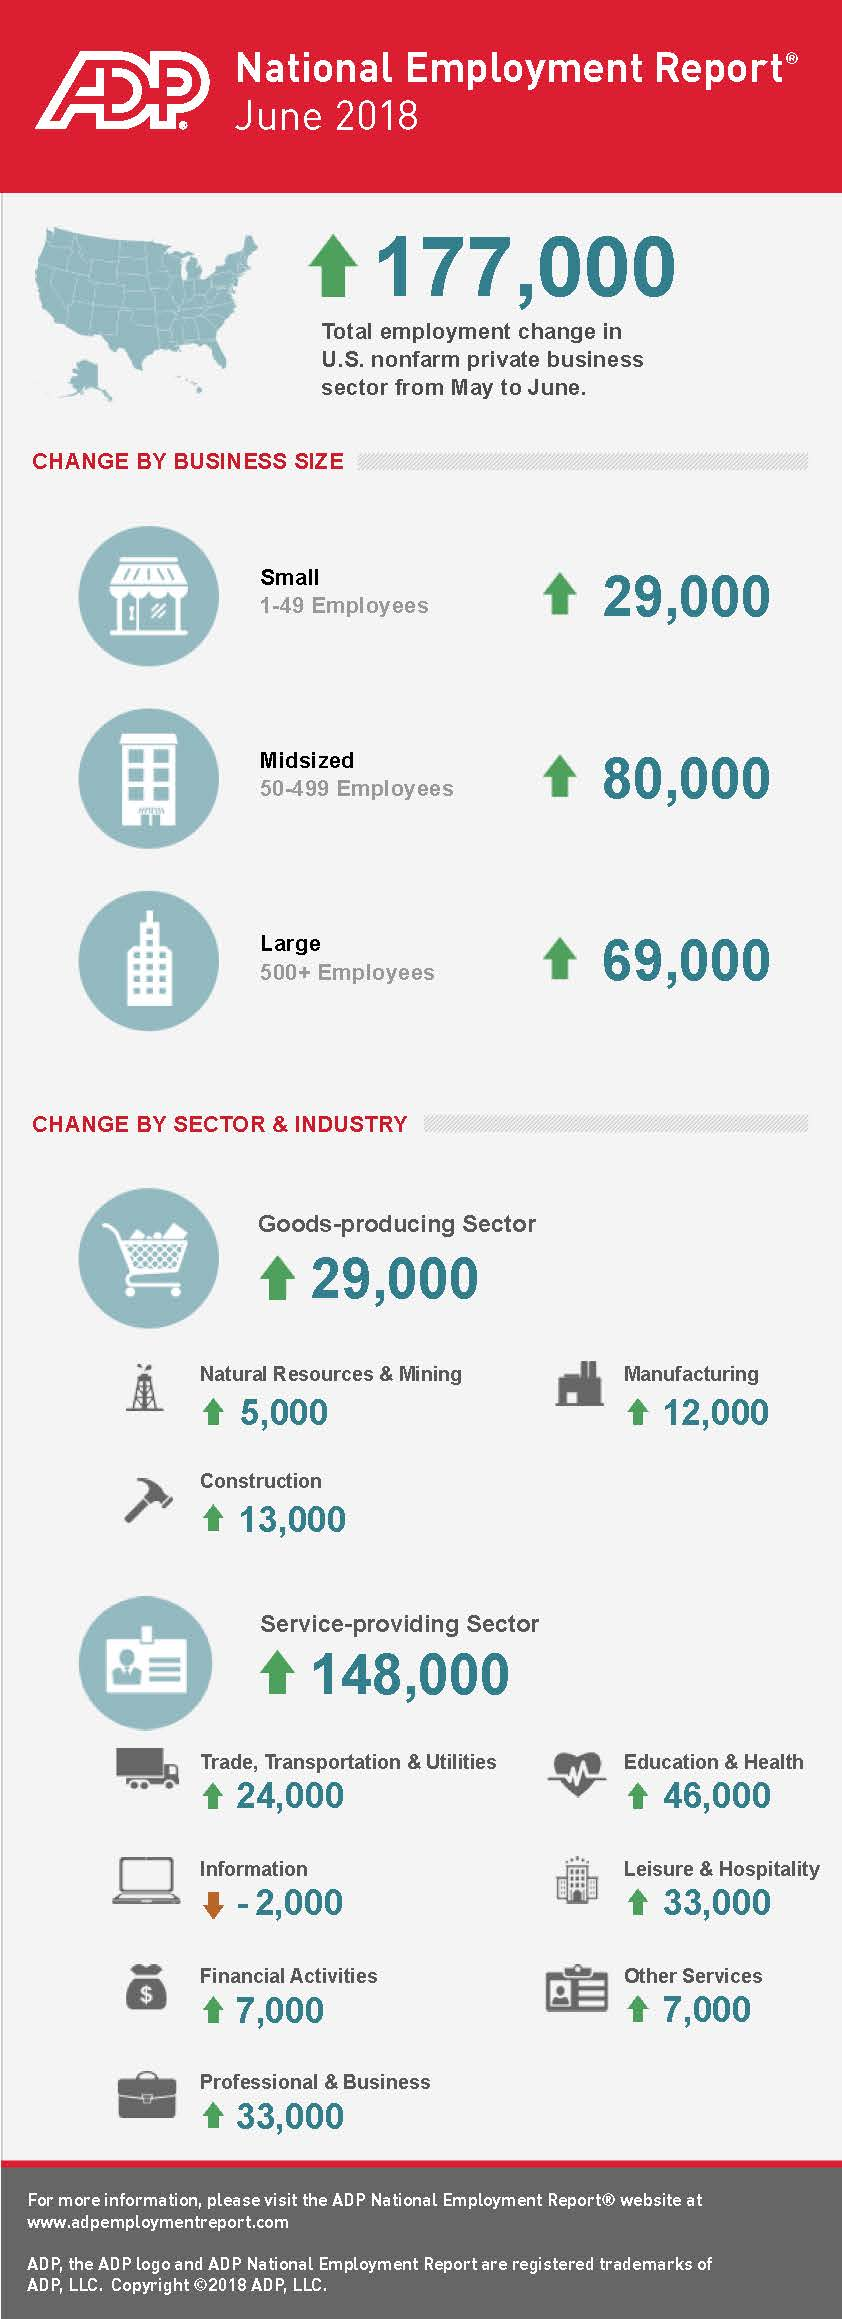 June 2018 ADP Small Business Report: Small Businesses Add 29,000 Jobs to U.S. Economy